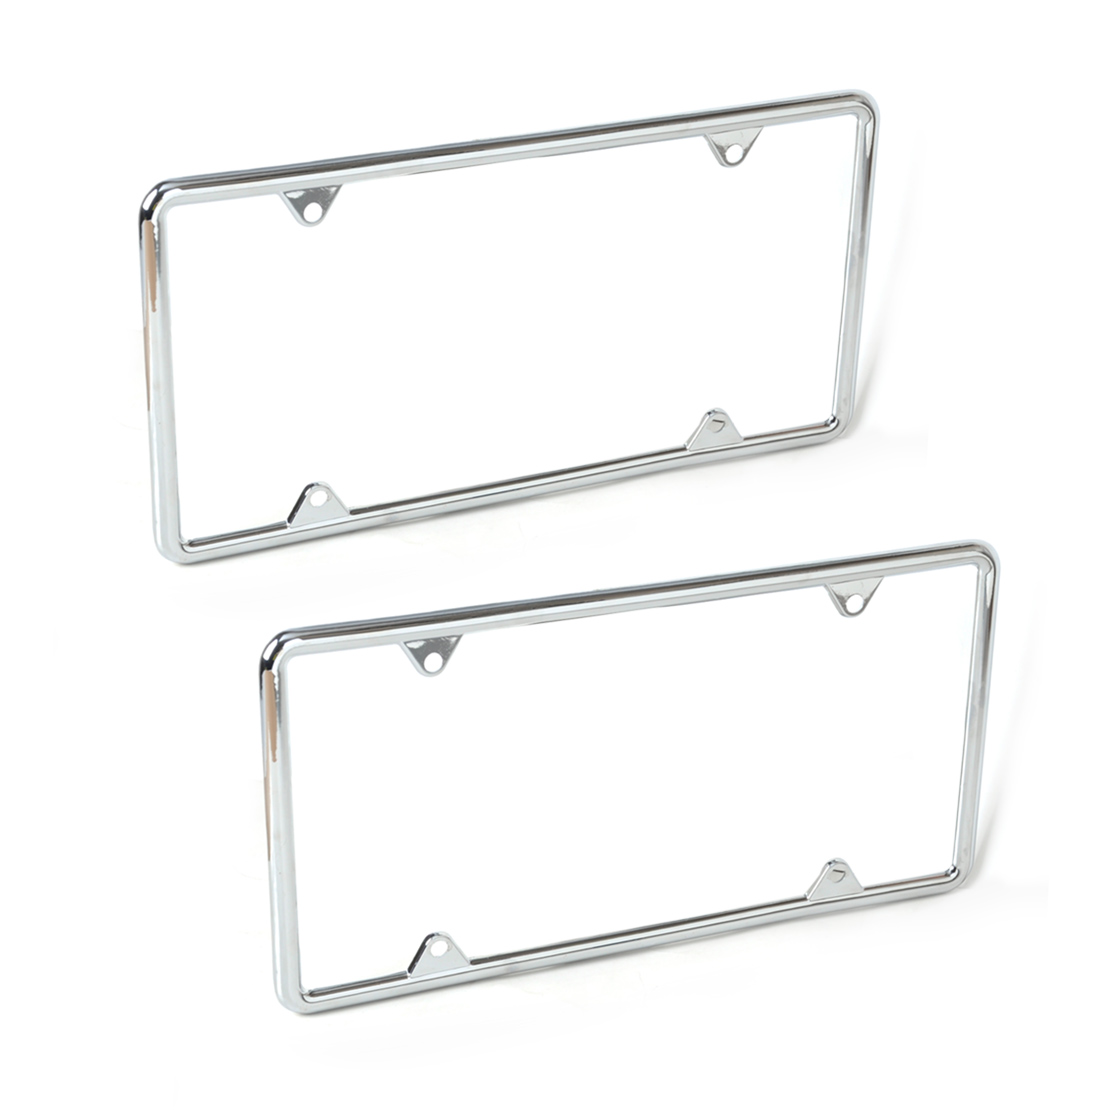 CITALL 2PCS Zinc Alloy License Plate Frame For Mercedes W212 Audi Q5 ...